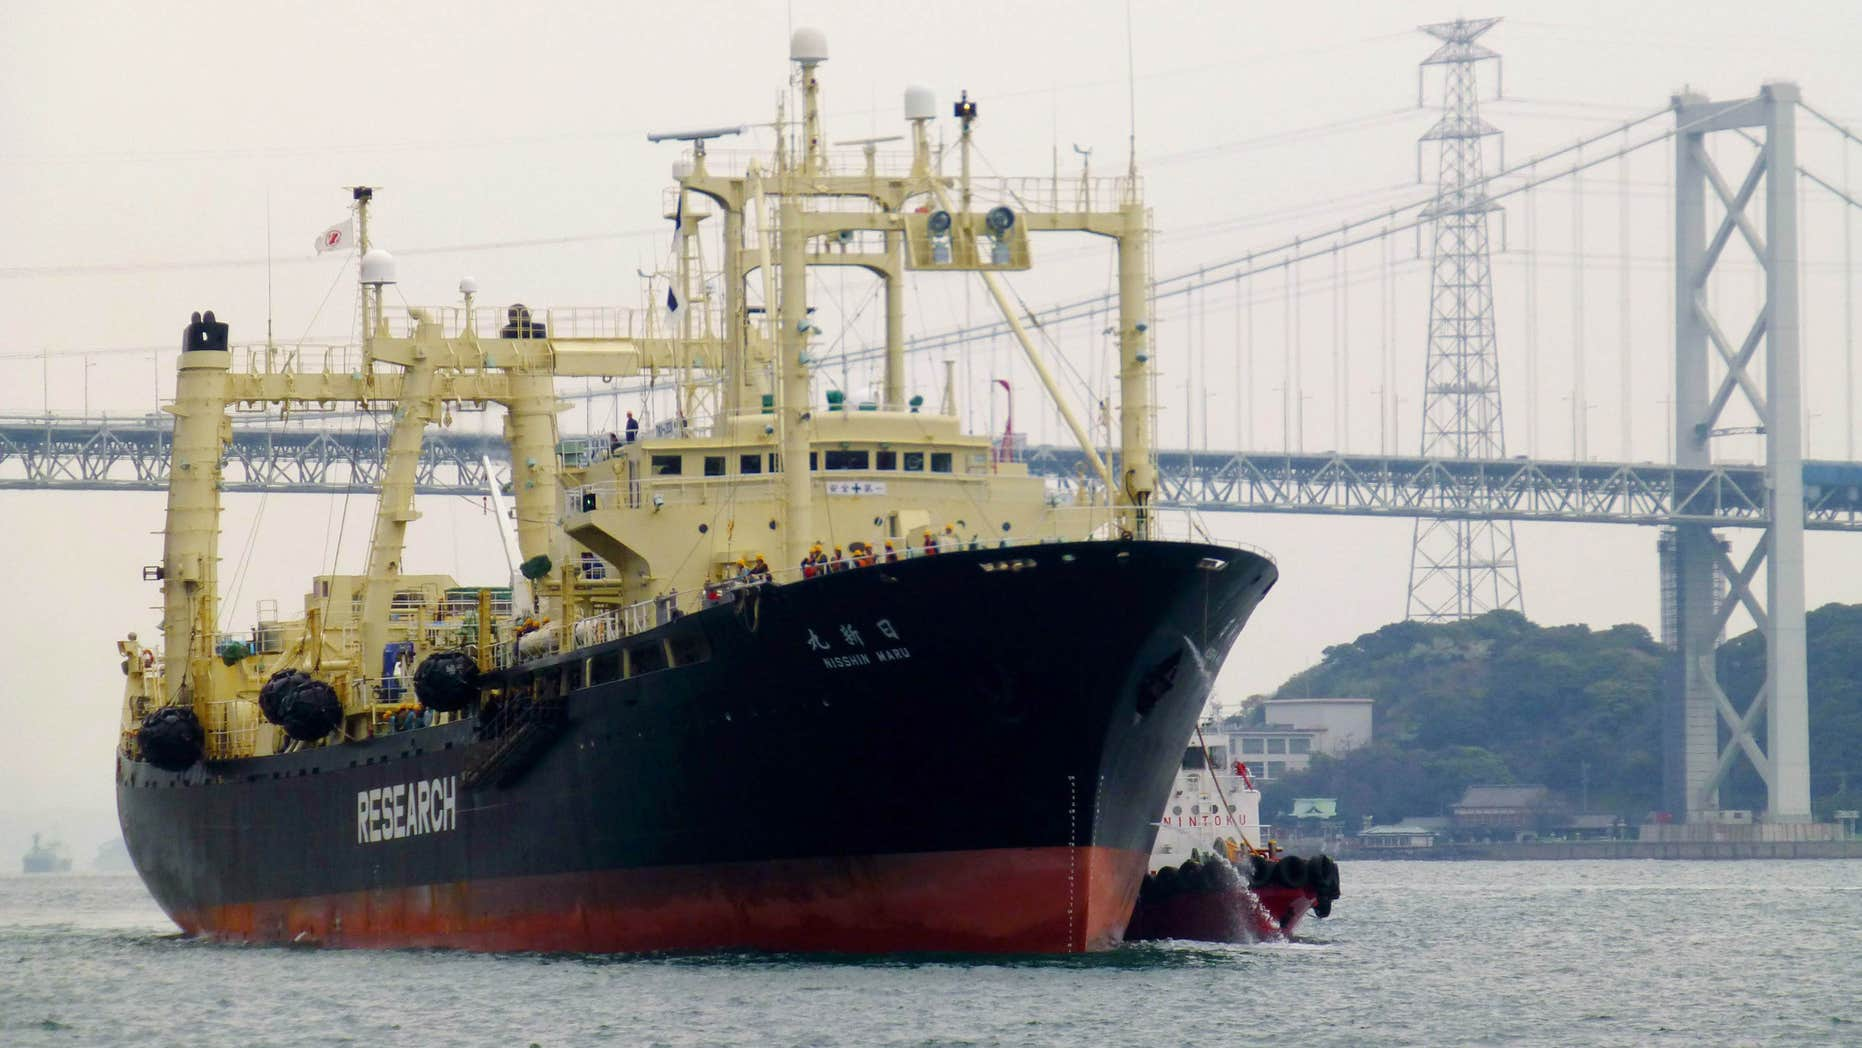 FILE - In this April 5, 2014 file photo, Japanese whaling vessel Nisshin Maru returns to a port, from the Antarctic Sea, in Shimonoseki, western Japan.